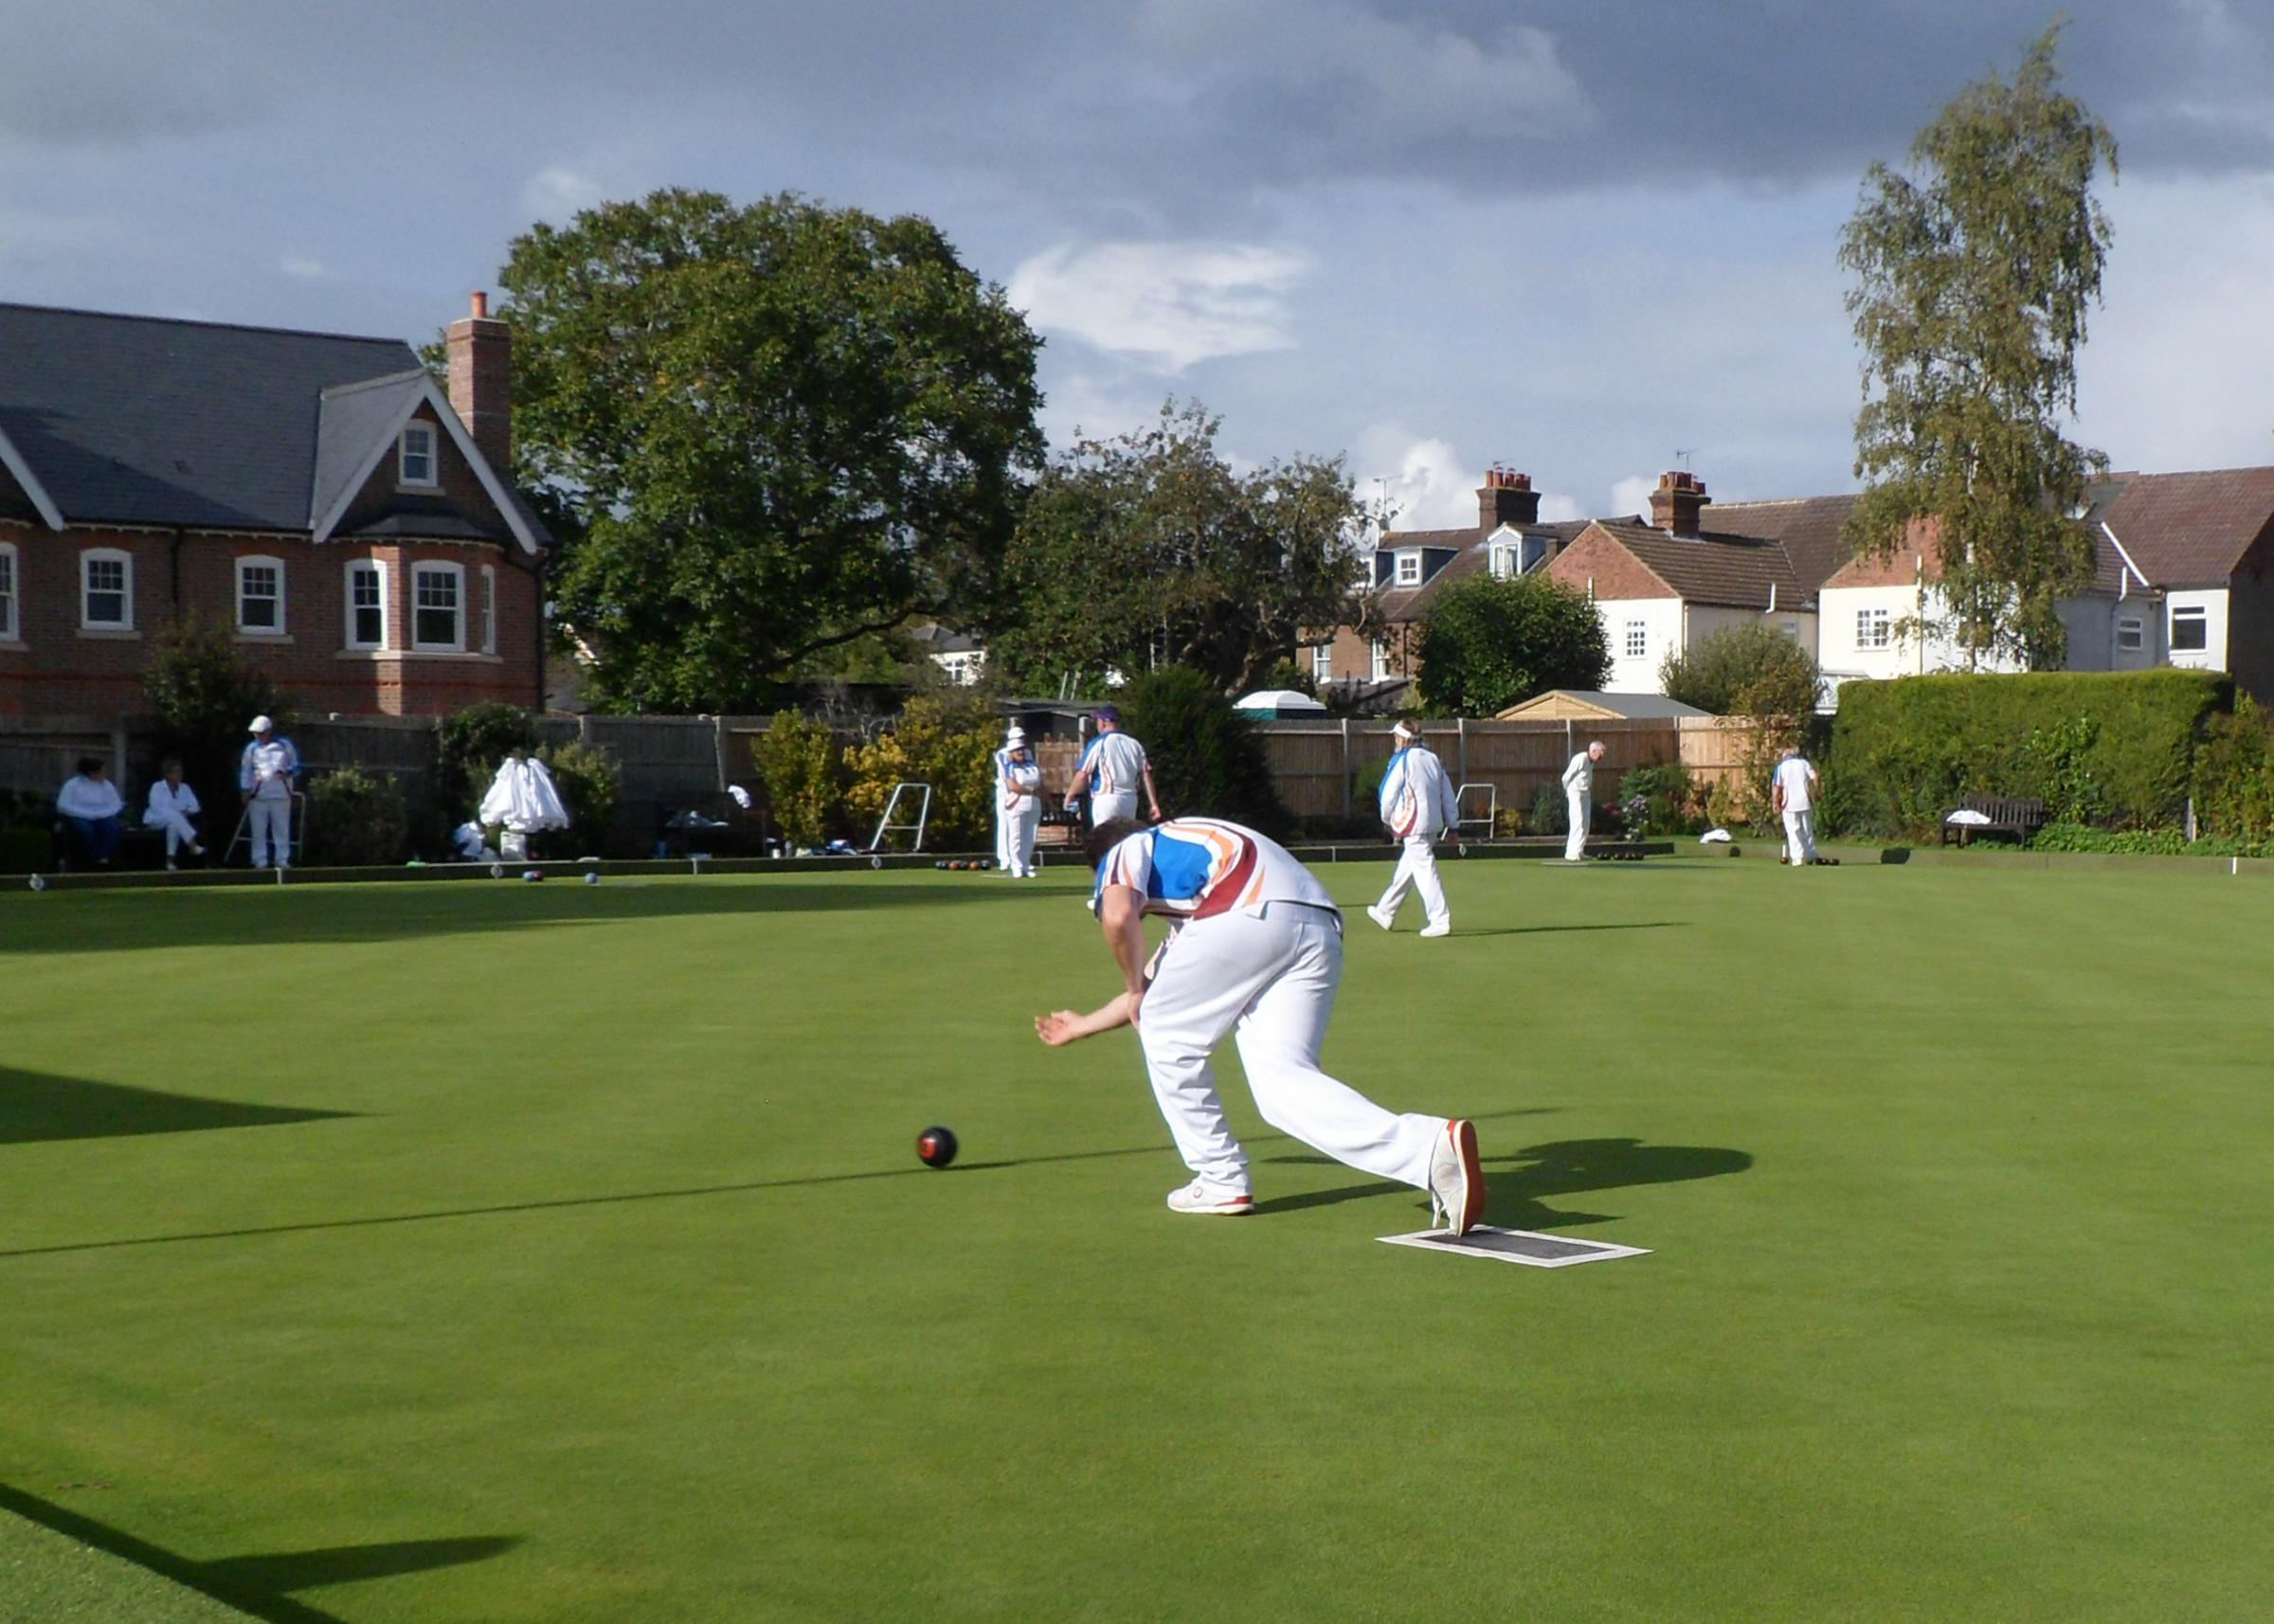 Harpenden Bowls Club is offering two open days